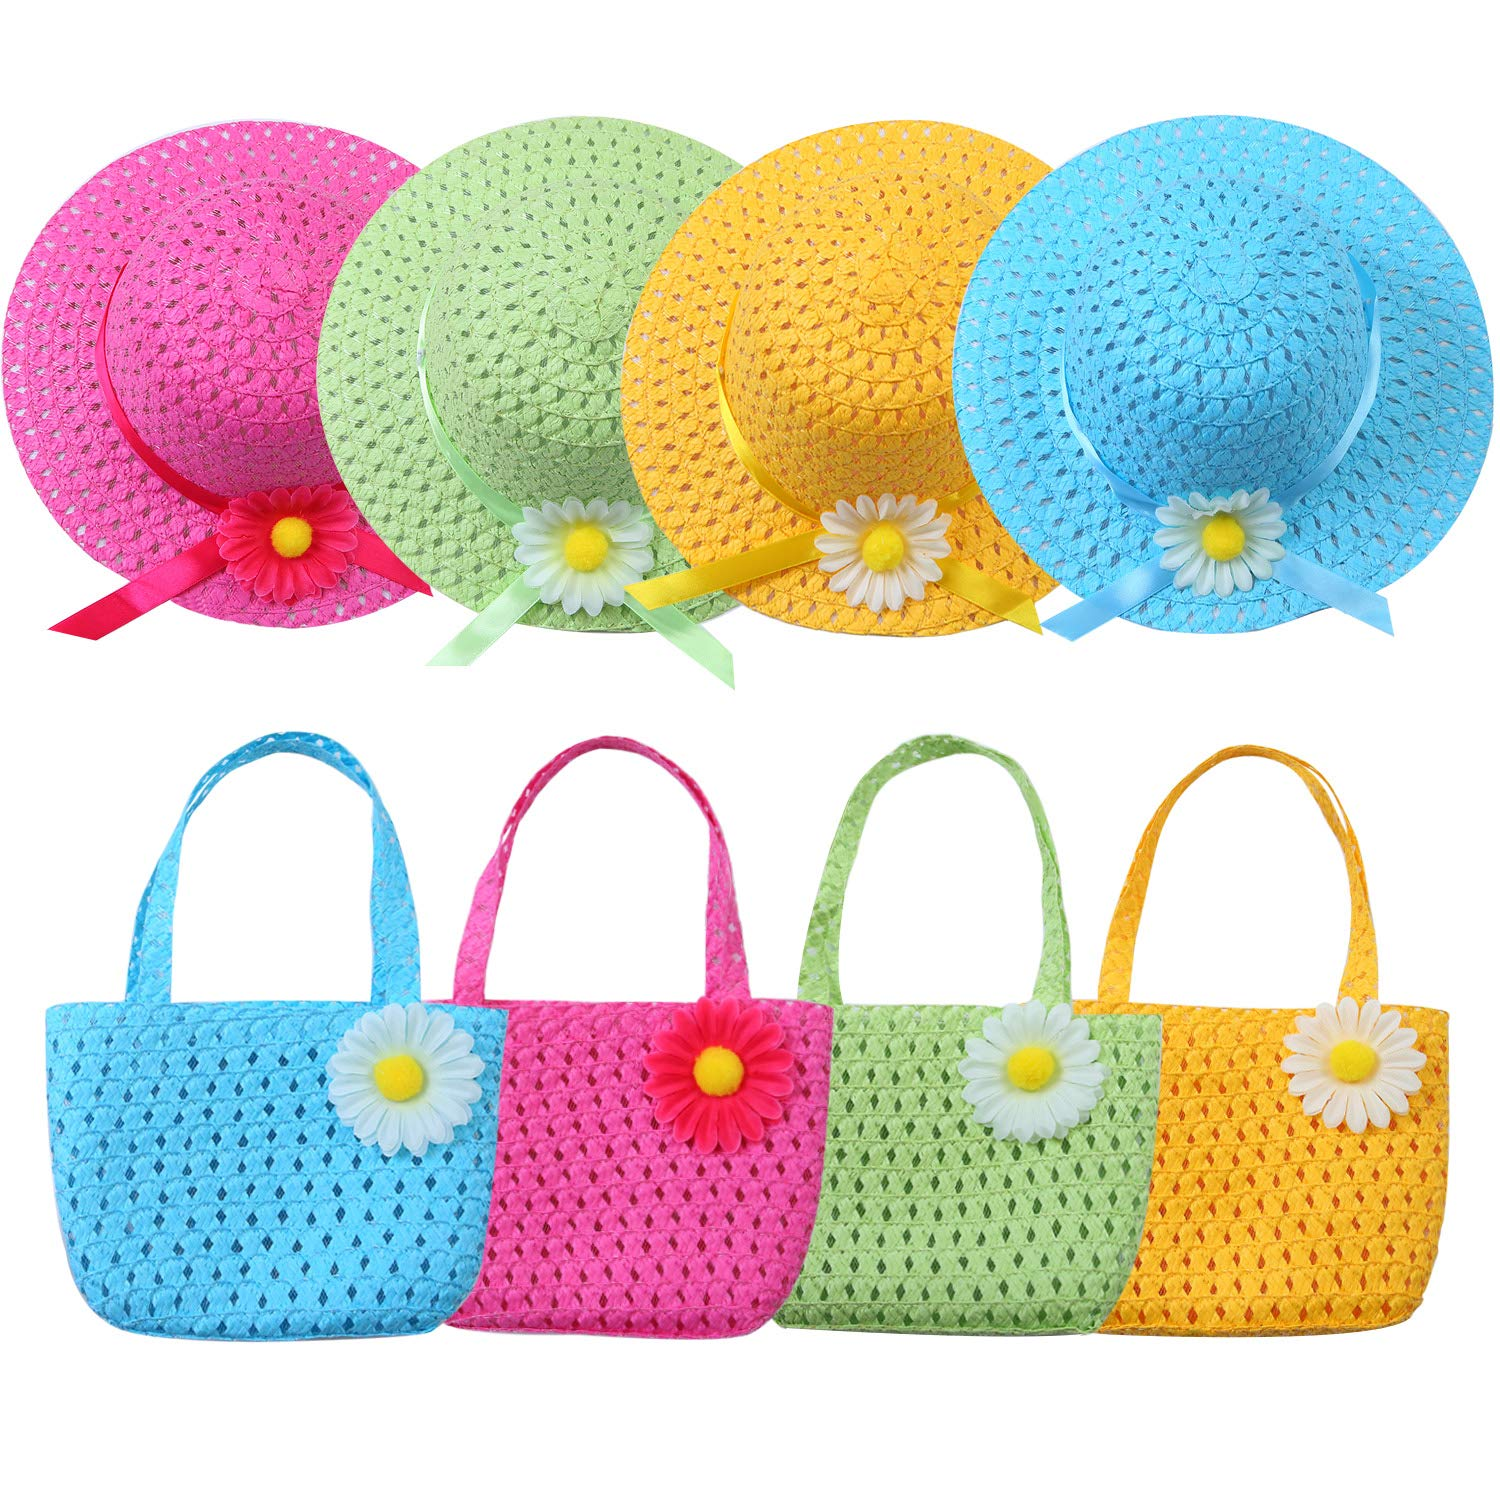 URATOT 4 Sets Girls Tea Party Hats Purse Kids Daisy Flower Sun Straw Hat and Purse Sets Party Supplies Accessories 4 Purses and 4 Daisy Flower Sunhats, 4 Colors